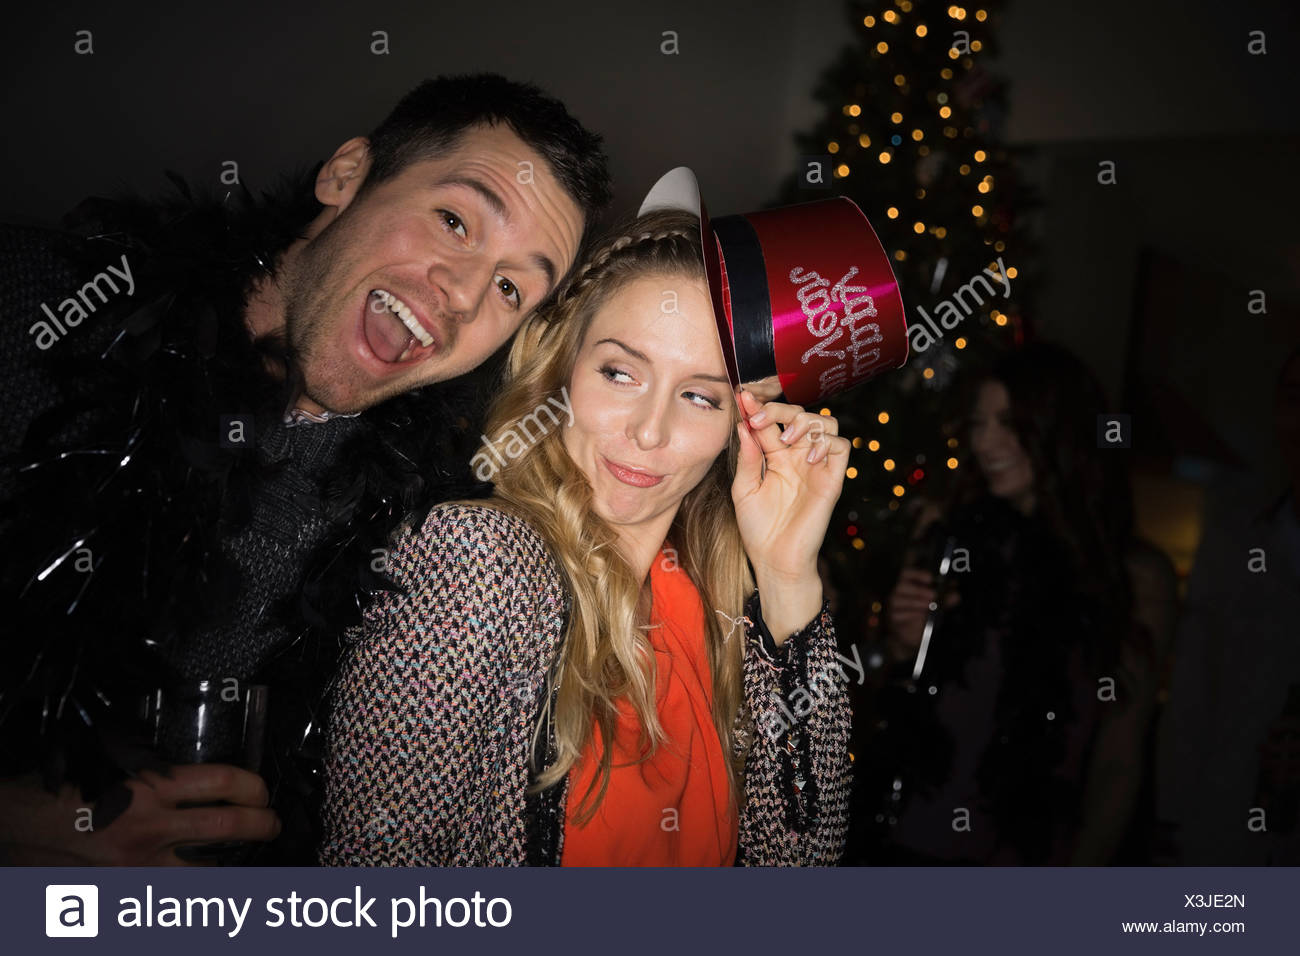 Couple enjoying New Years Eve party - Stock Image